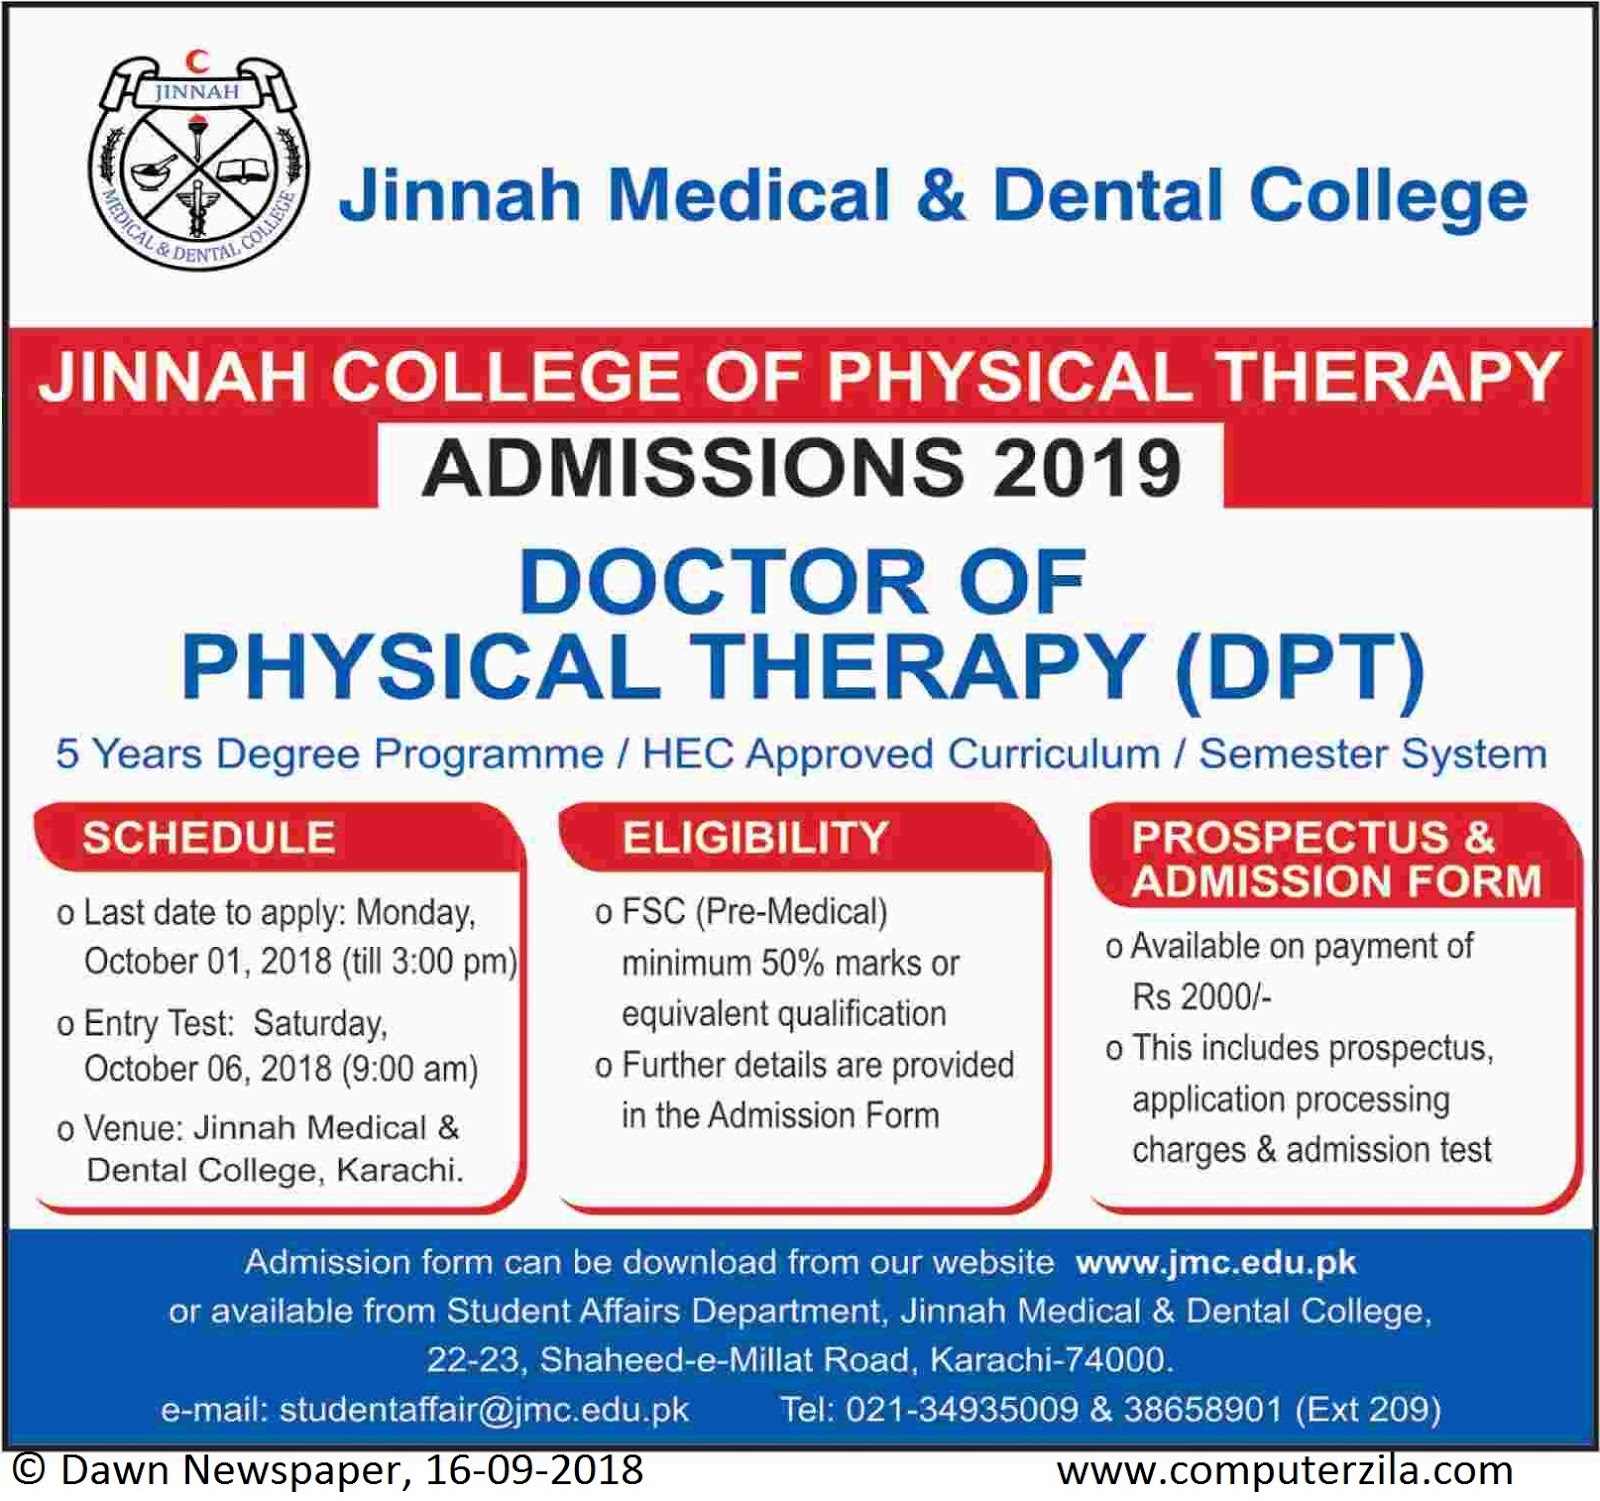 Admissions Open For Spring 2019 At JMDC Karachi Campus